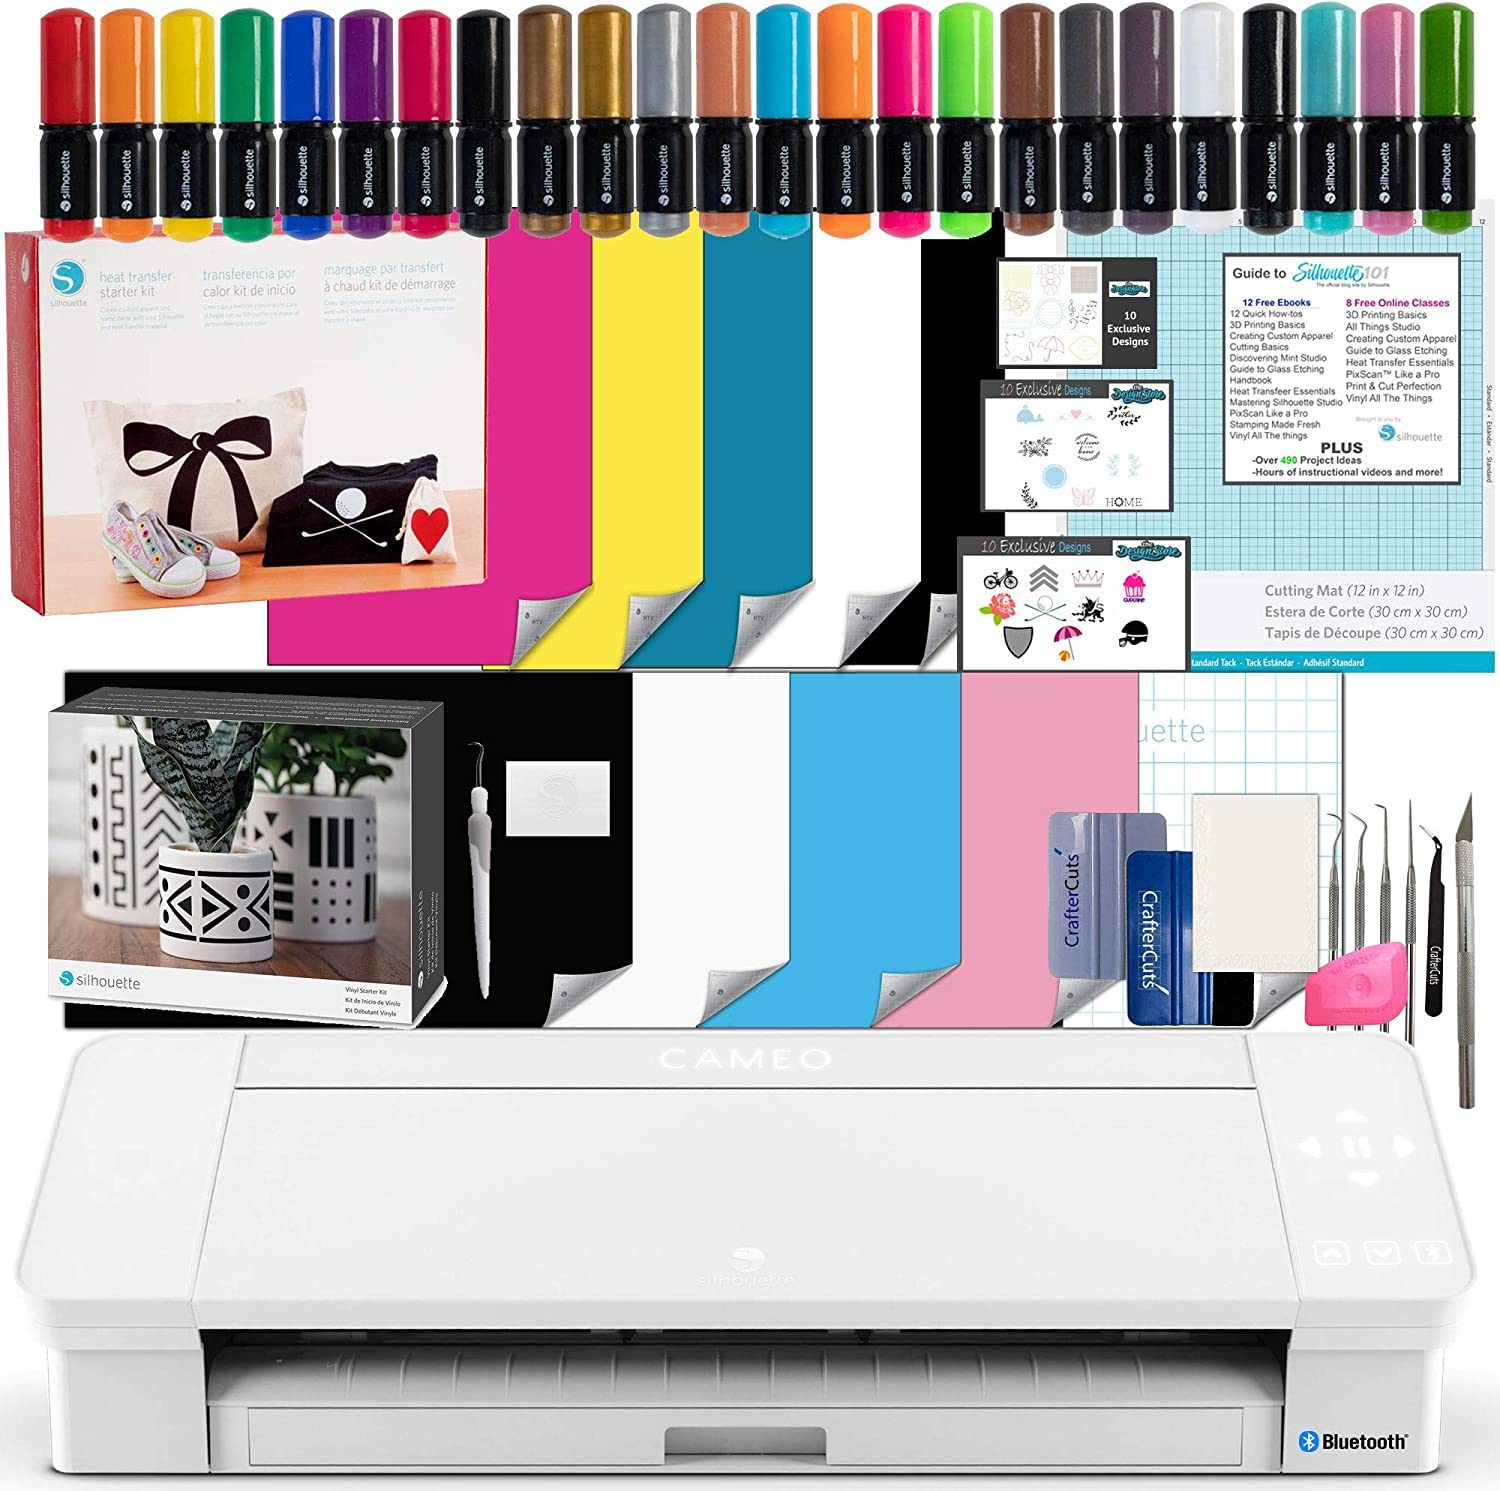 Silhouette Cameo 4 White Bundle with Vinyl Starter Kit, Heat Transfer Starter Kit, 2 Autoblade 2, 24 Pack of Pens, CC Vinyl Tool Kit, 120, and Access to Ebooks, Tutorials, Classes